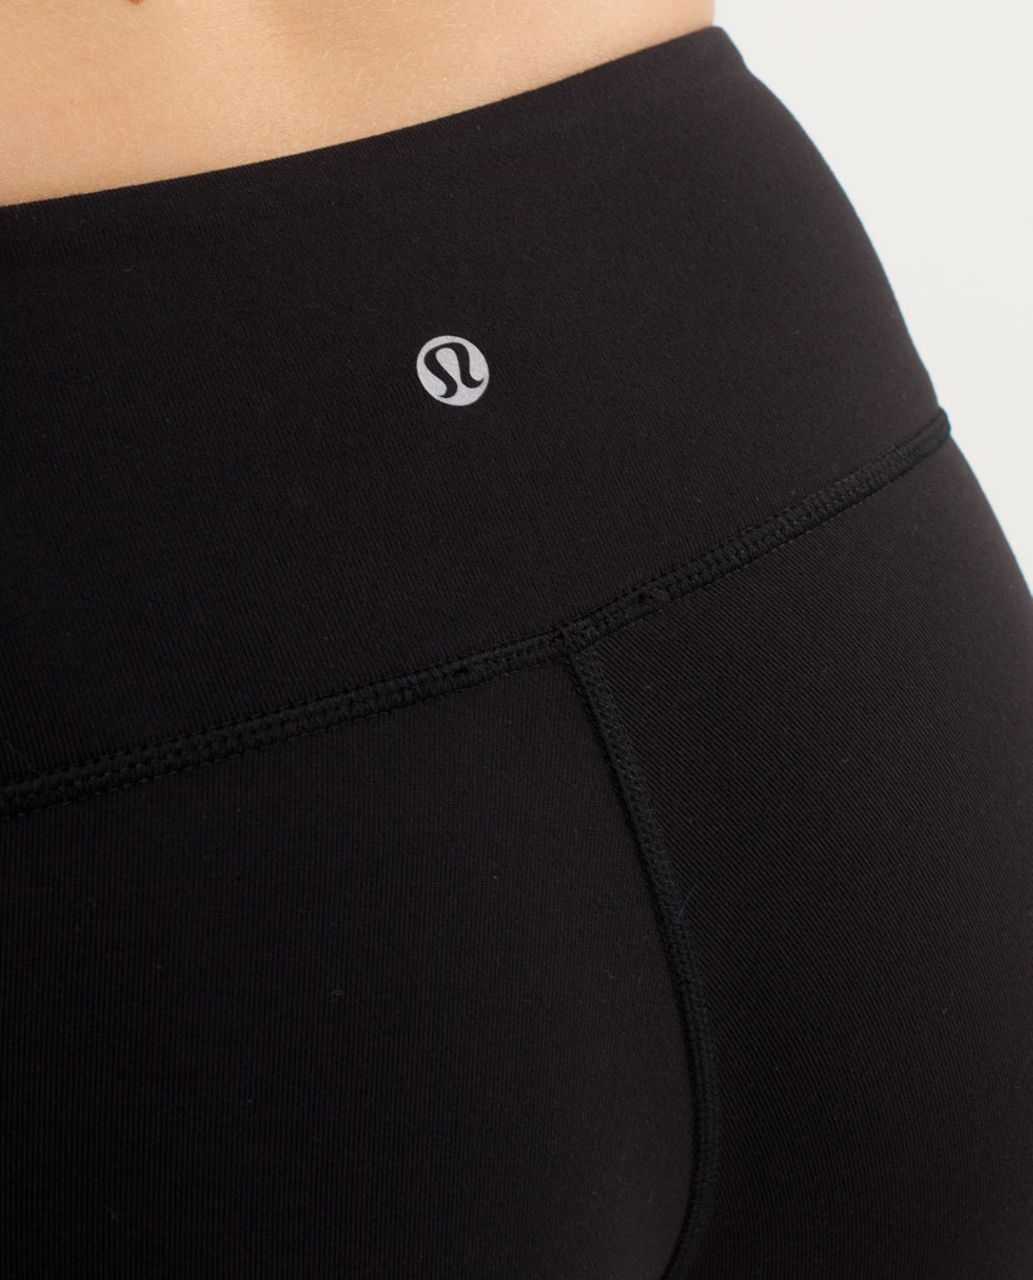 Lululemon Wunder Under Crop *Special Edition - Black